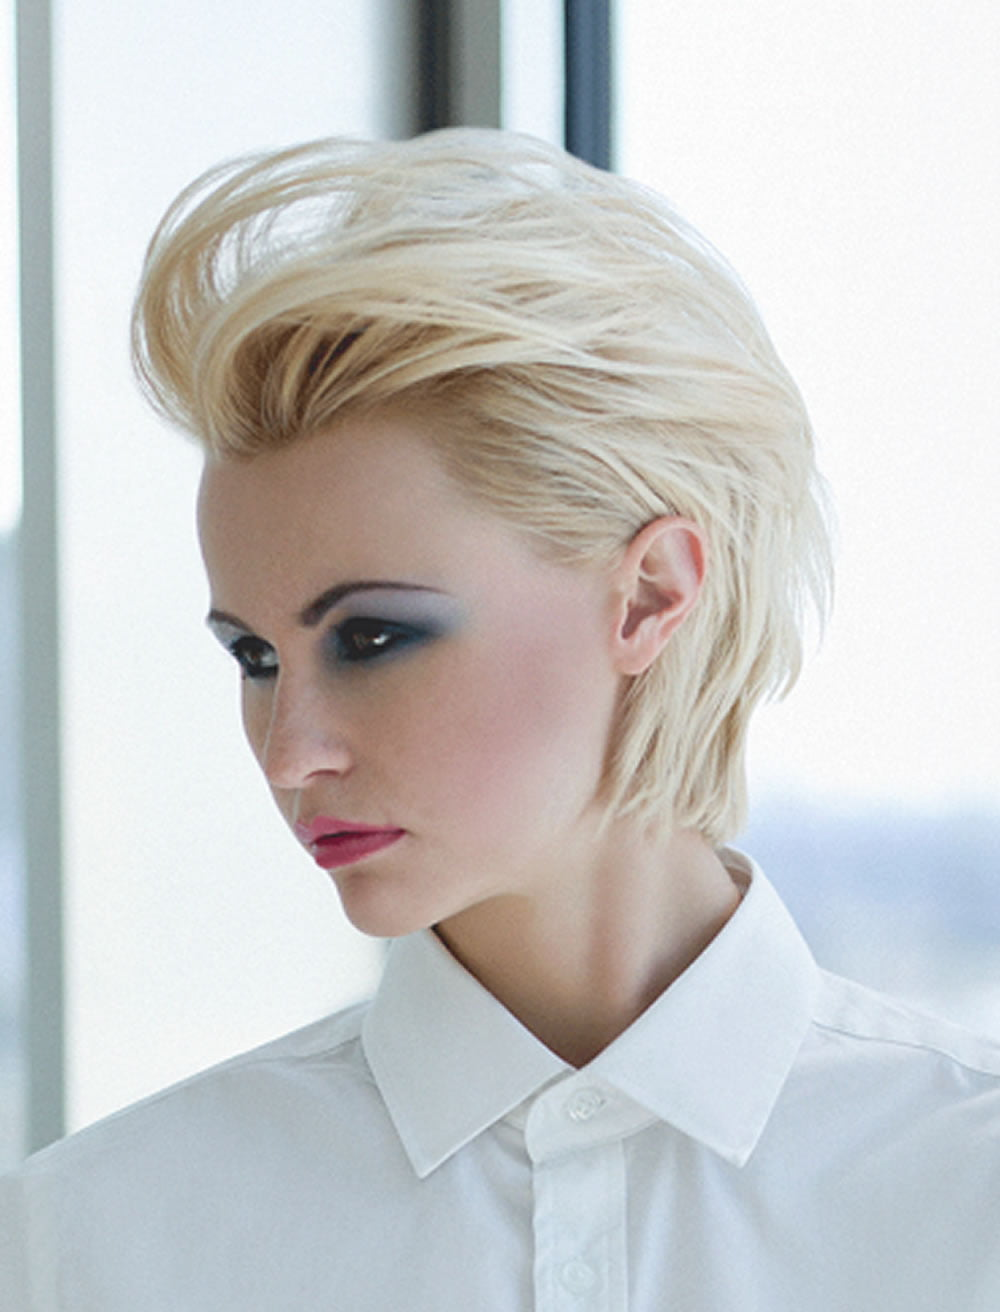 Easy Hairstyles For Short Hair 2018 2019 Pixie Hair Cuts Page 4